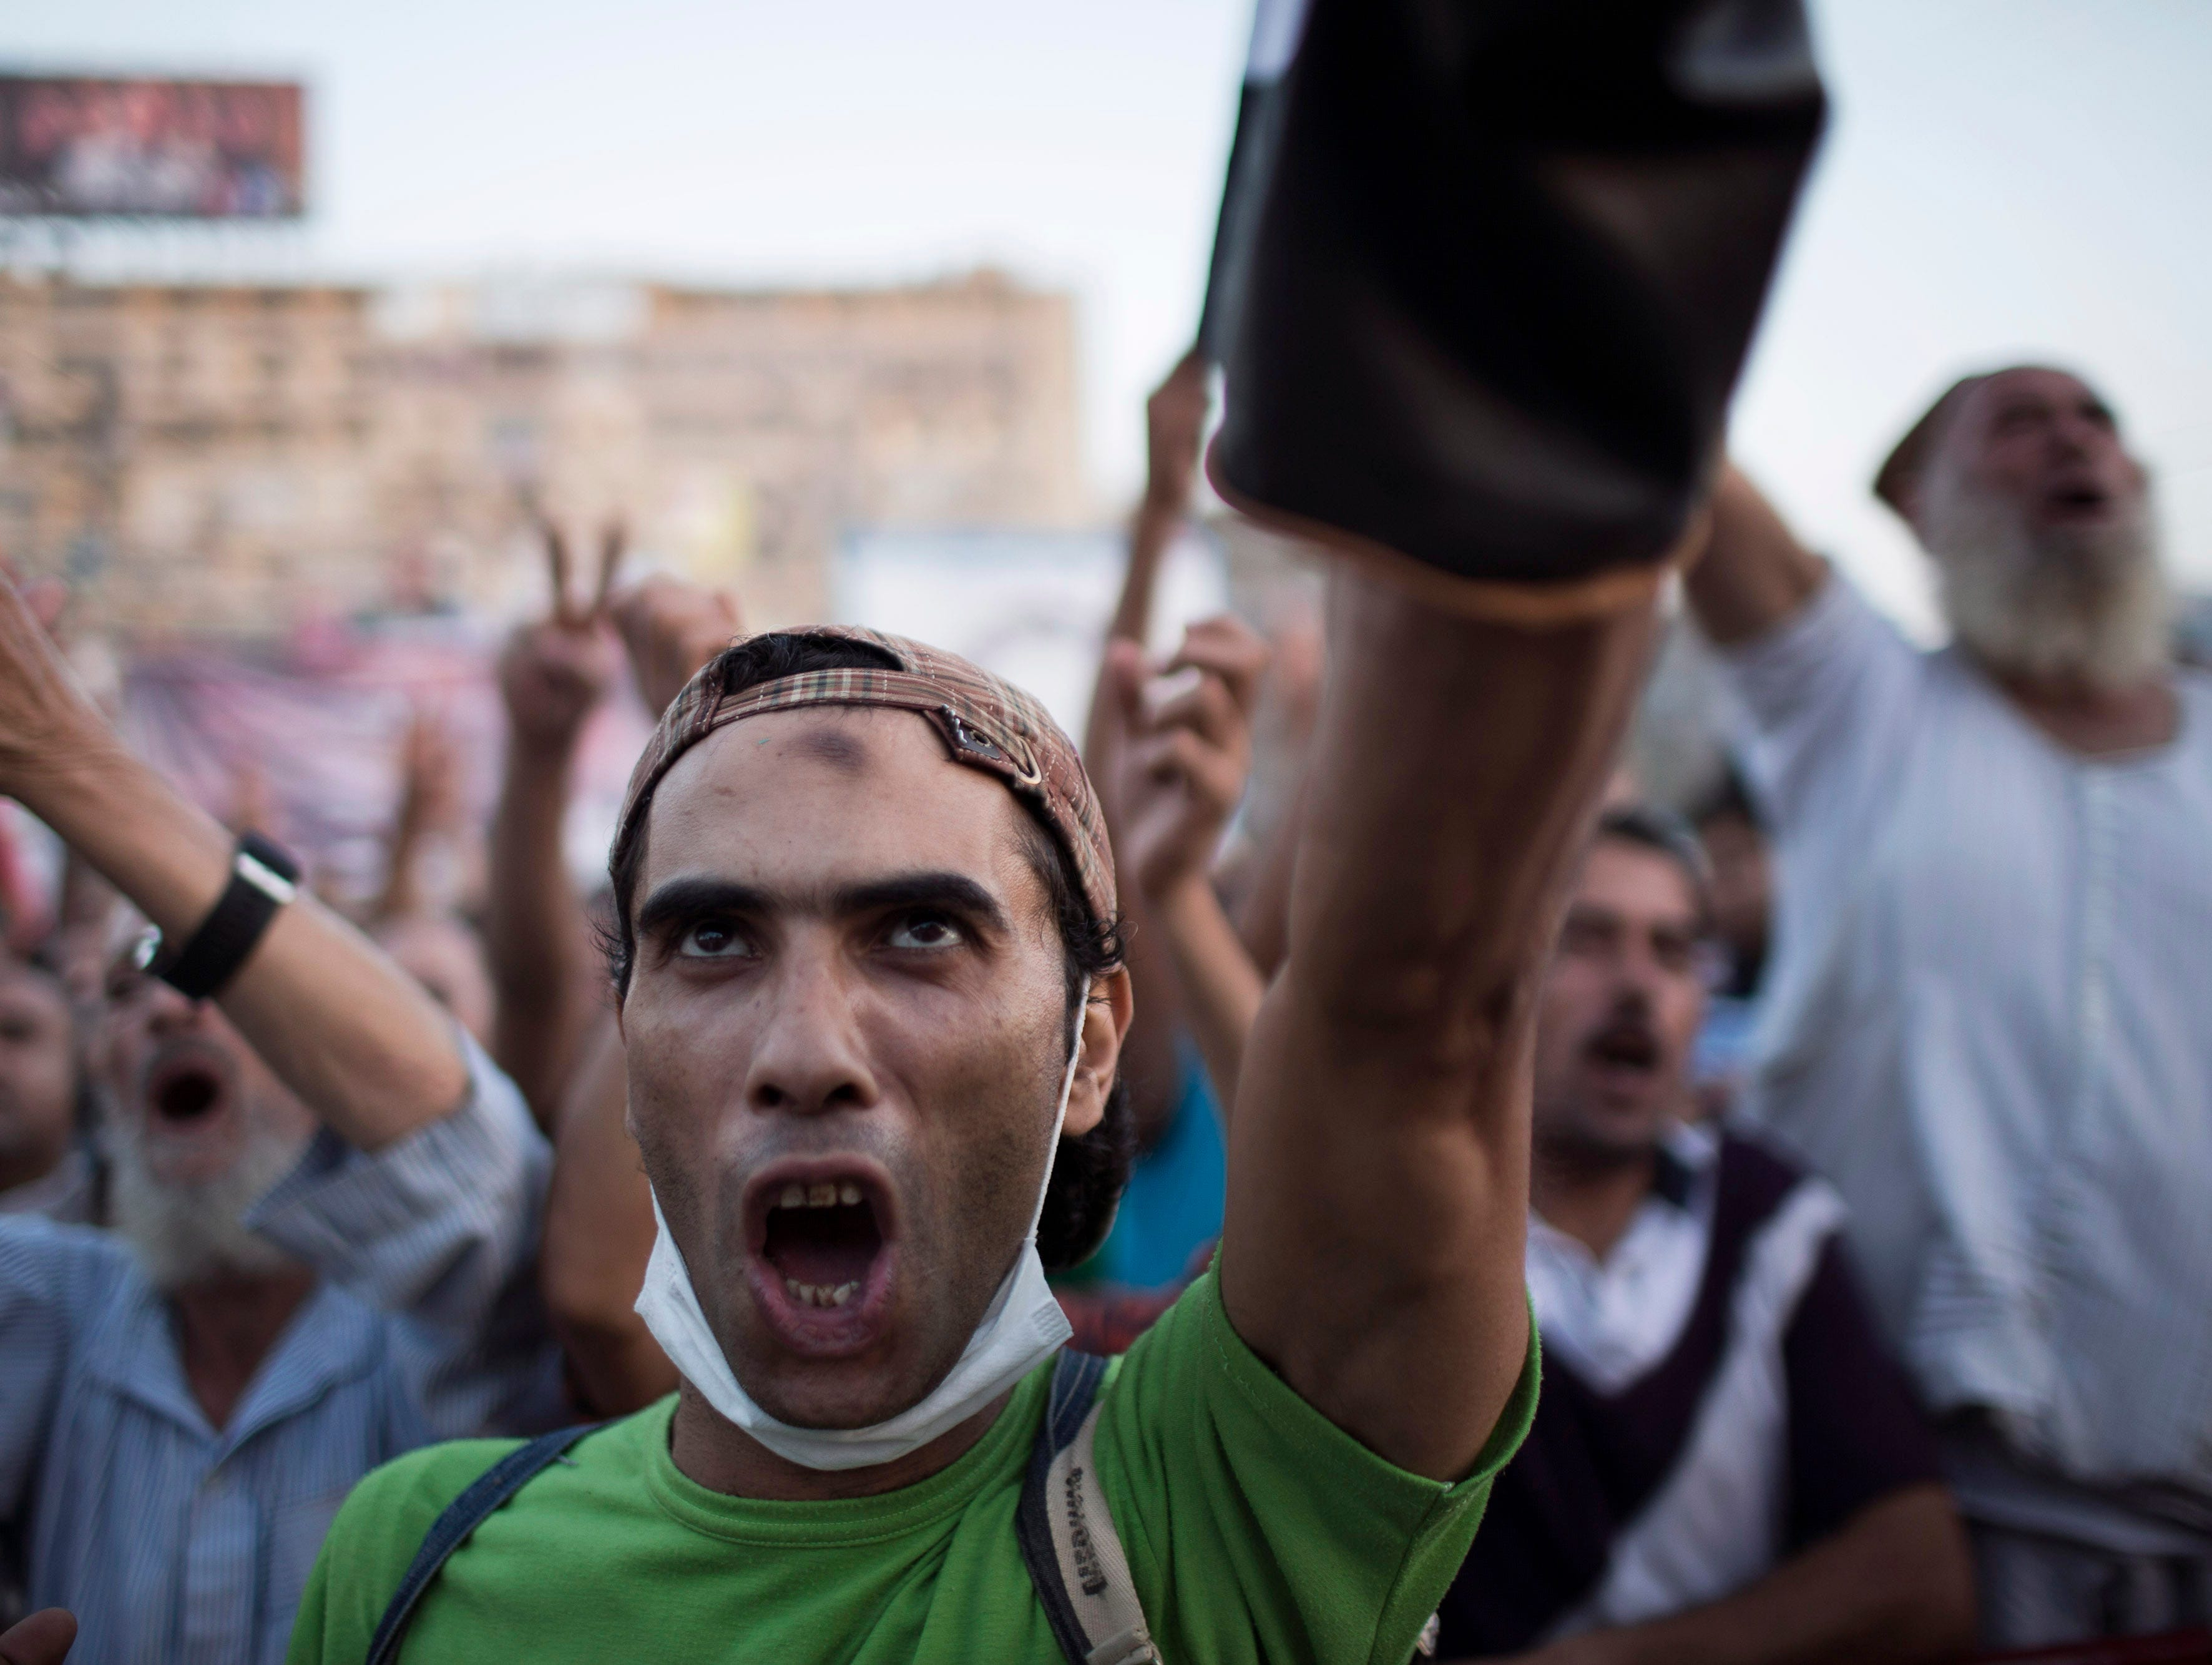 A supporter of Egypt's ousted President Mohammed Morsi chants slogans against the Egyptian Army during a protest on Aug. 12. By midday Egyptian police did not take action to disperse fortified protest camps despite security officials declaring Sunday that forces would besiege two sit-ins within 24 hours.